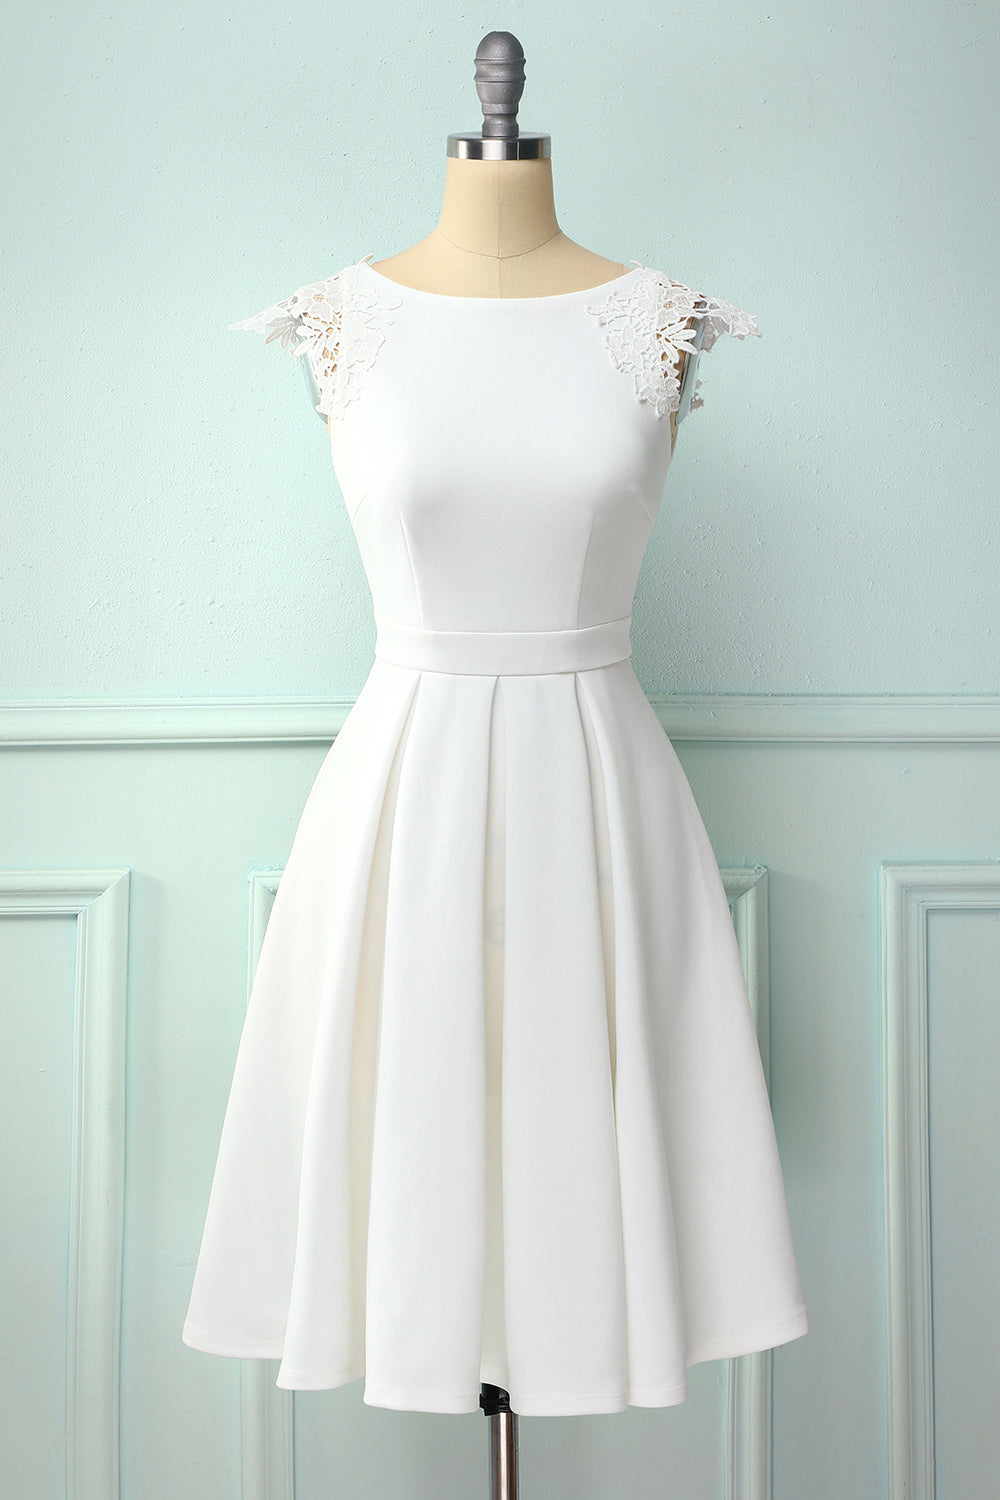 White Vintage Dress with Lace